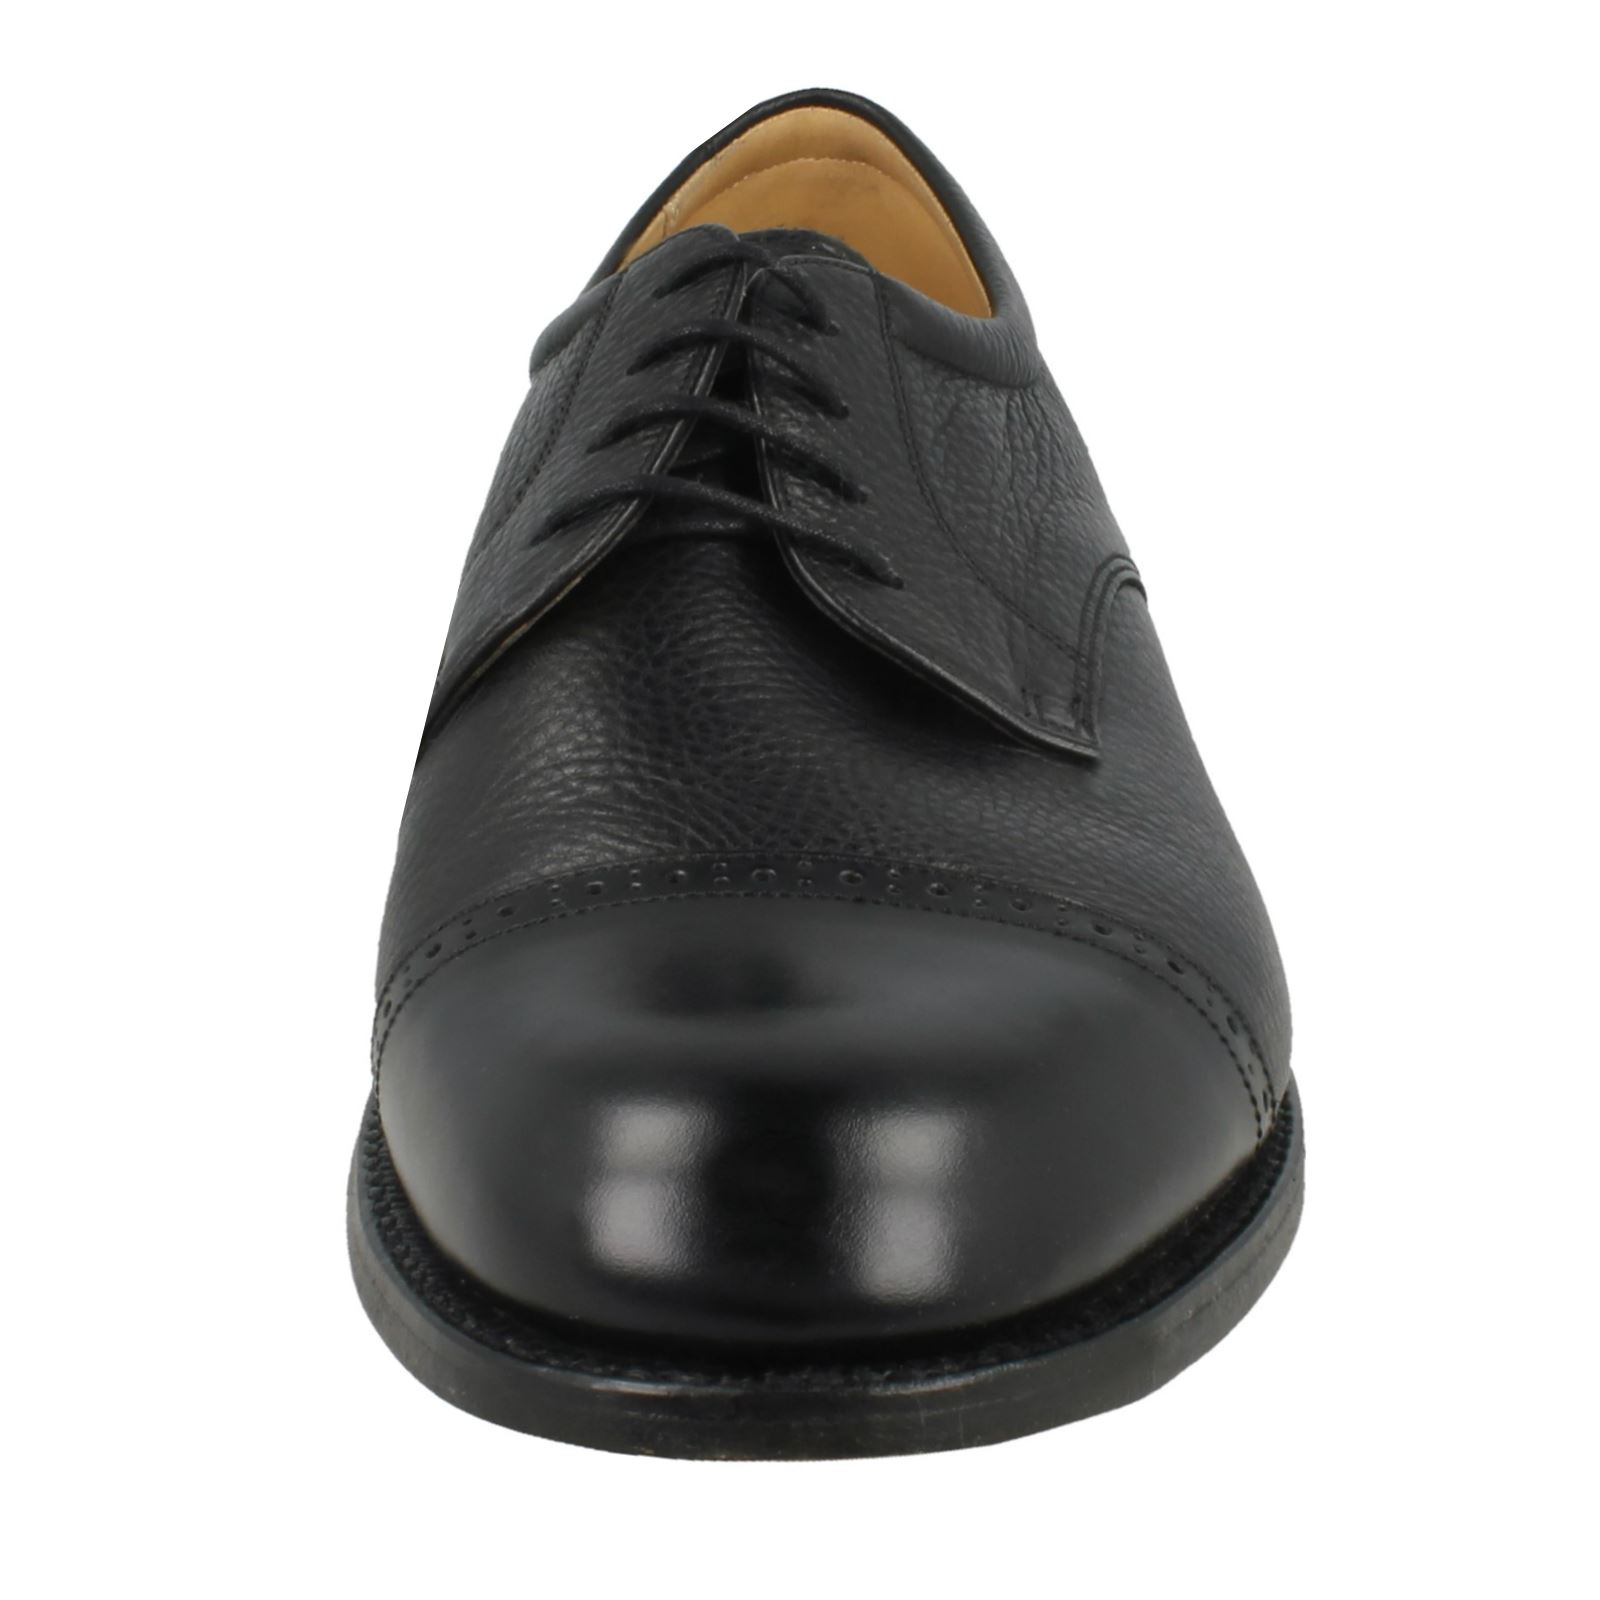 Barker - Mens Brogue Style Schuhes - Barker Staines 872bc2